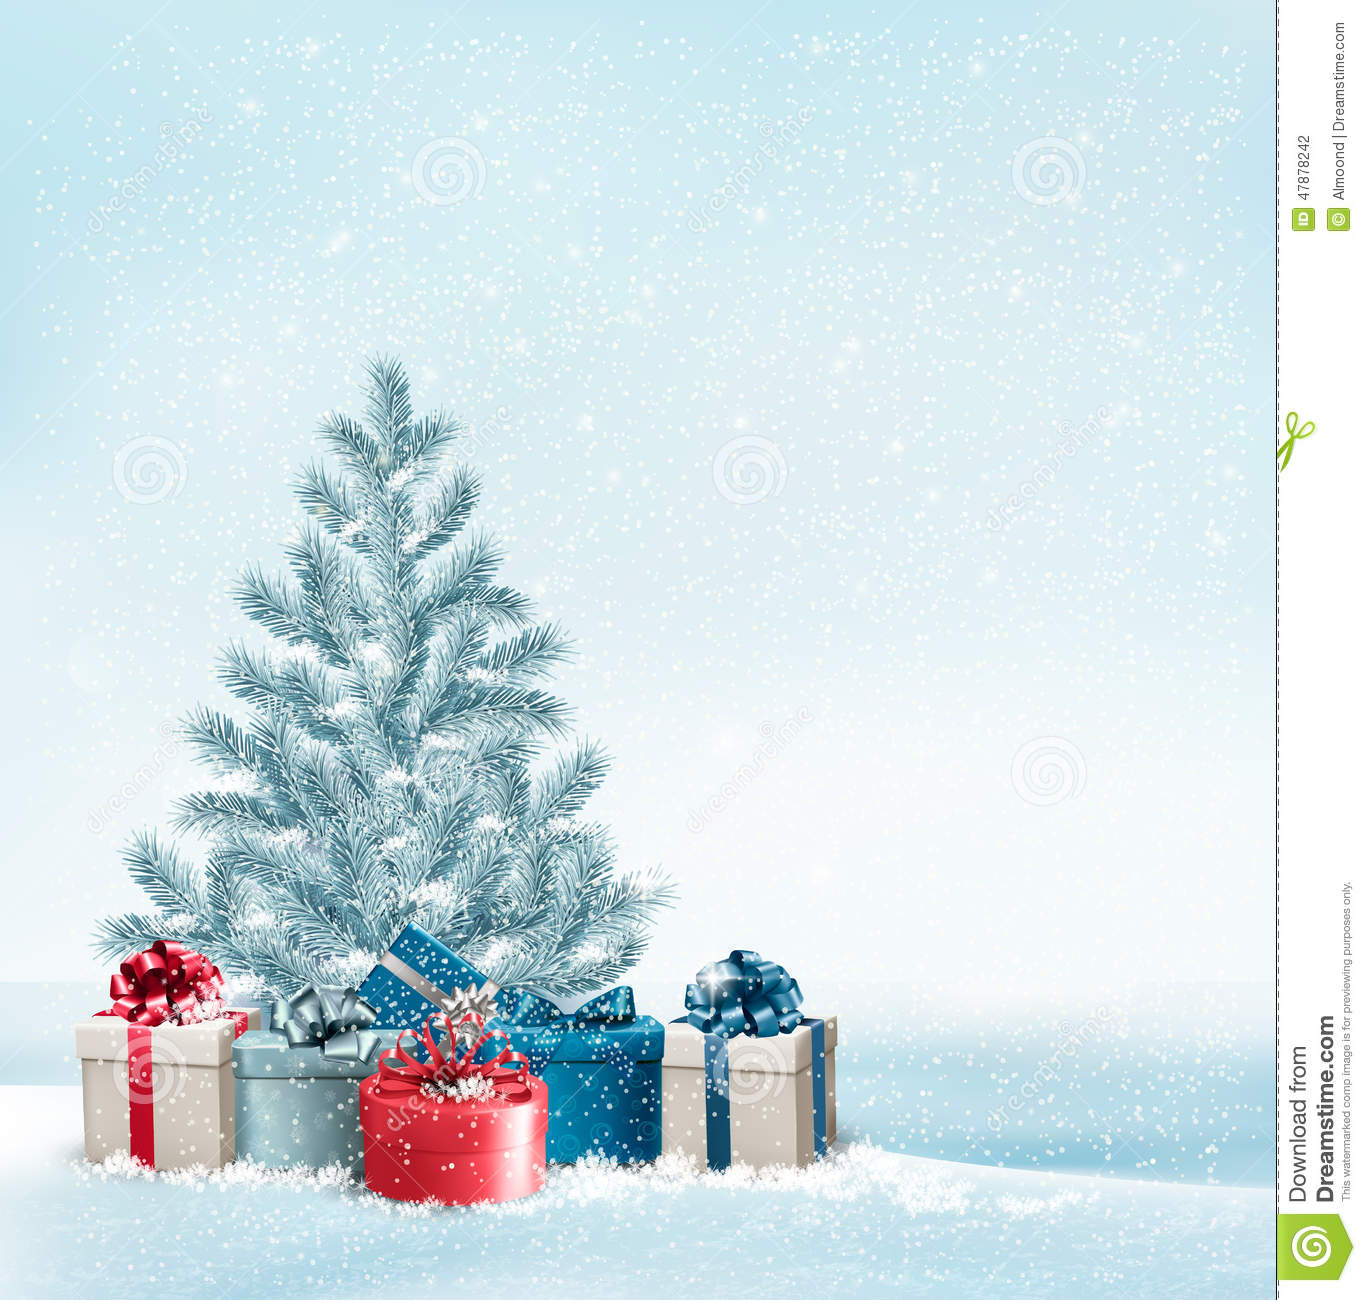 Picture Of Christmas Tree With Presents: Christmas Tree With Presents Background. Stock Vector